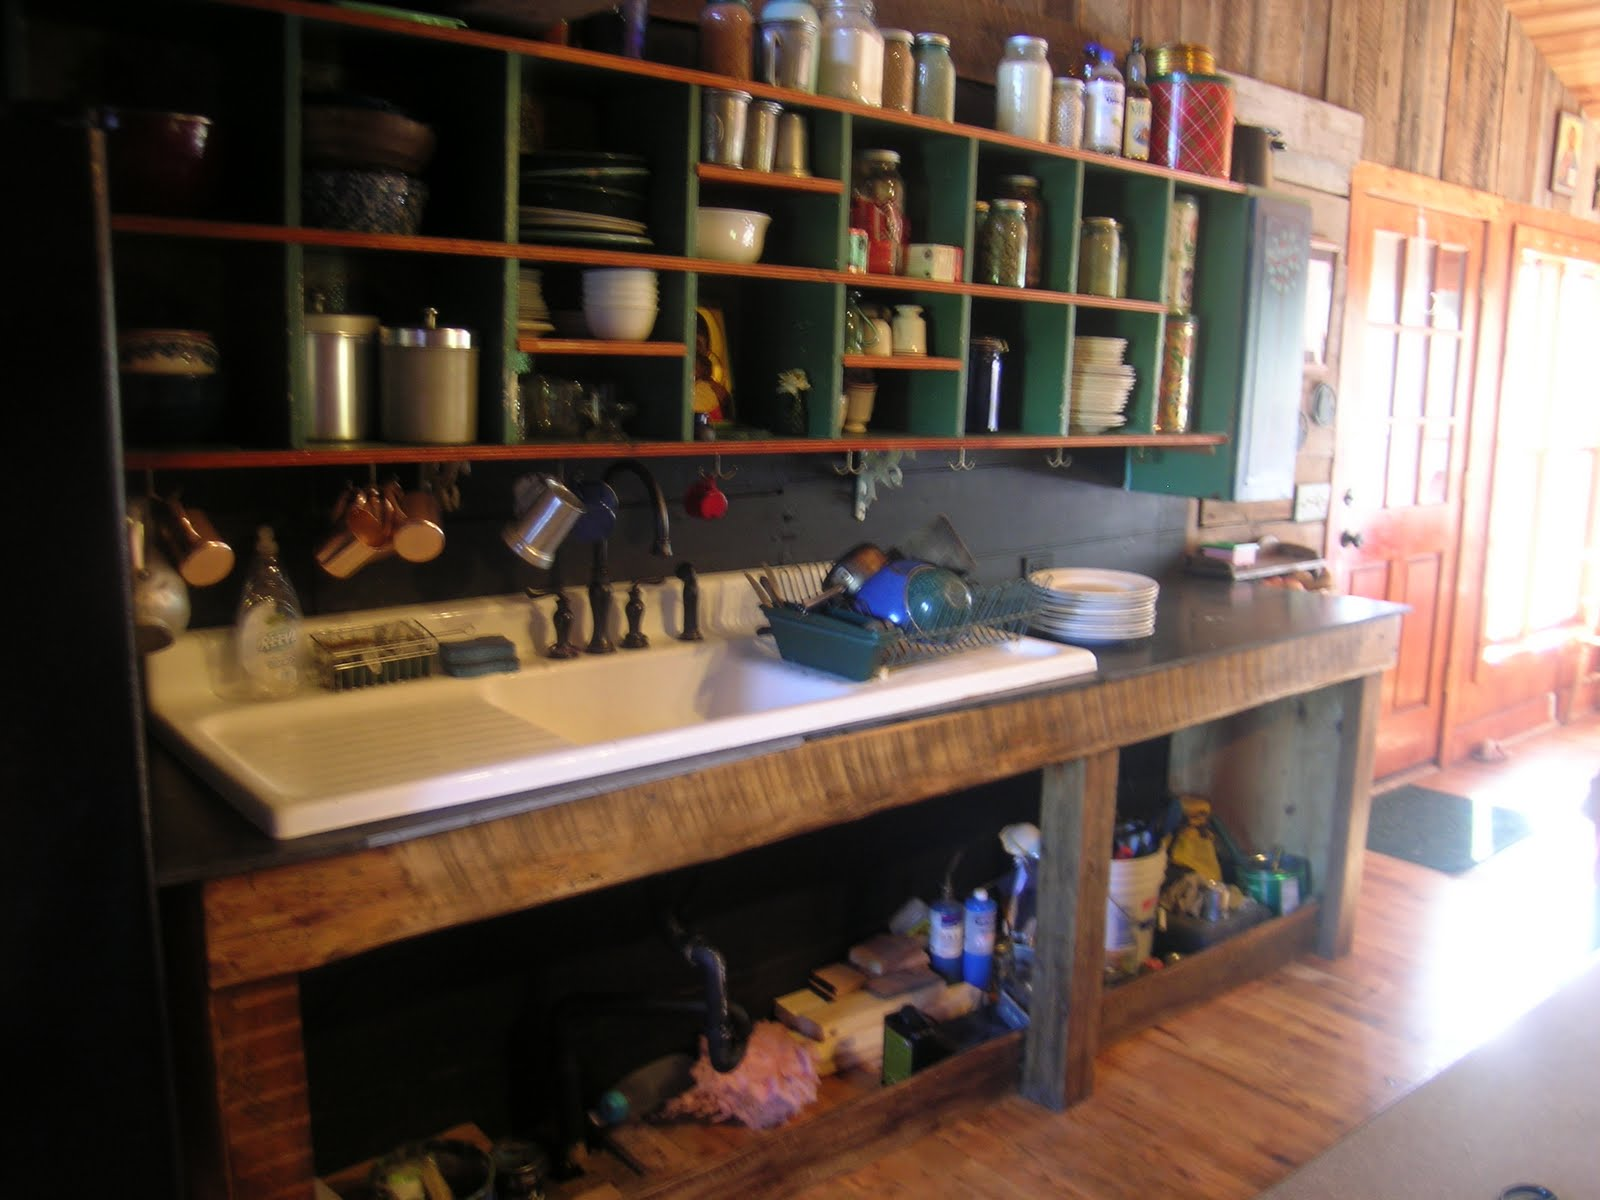 homemade sink cabinet kitchen sink cabinets Homemade Sink Cabinet